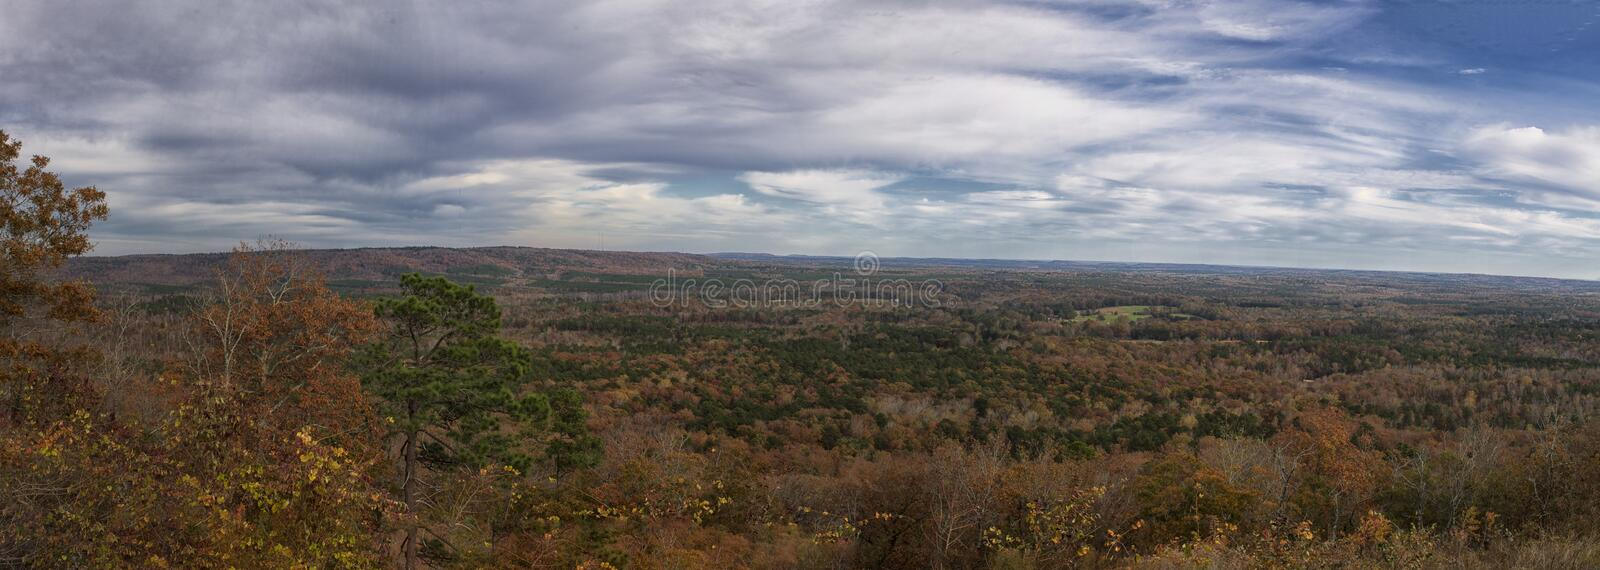 The Overlook of Pine Mountain Valley from Dodwells Knob stock photo